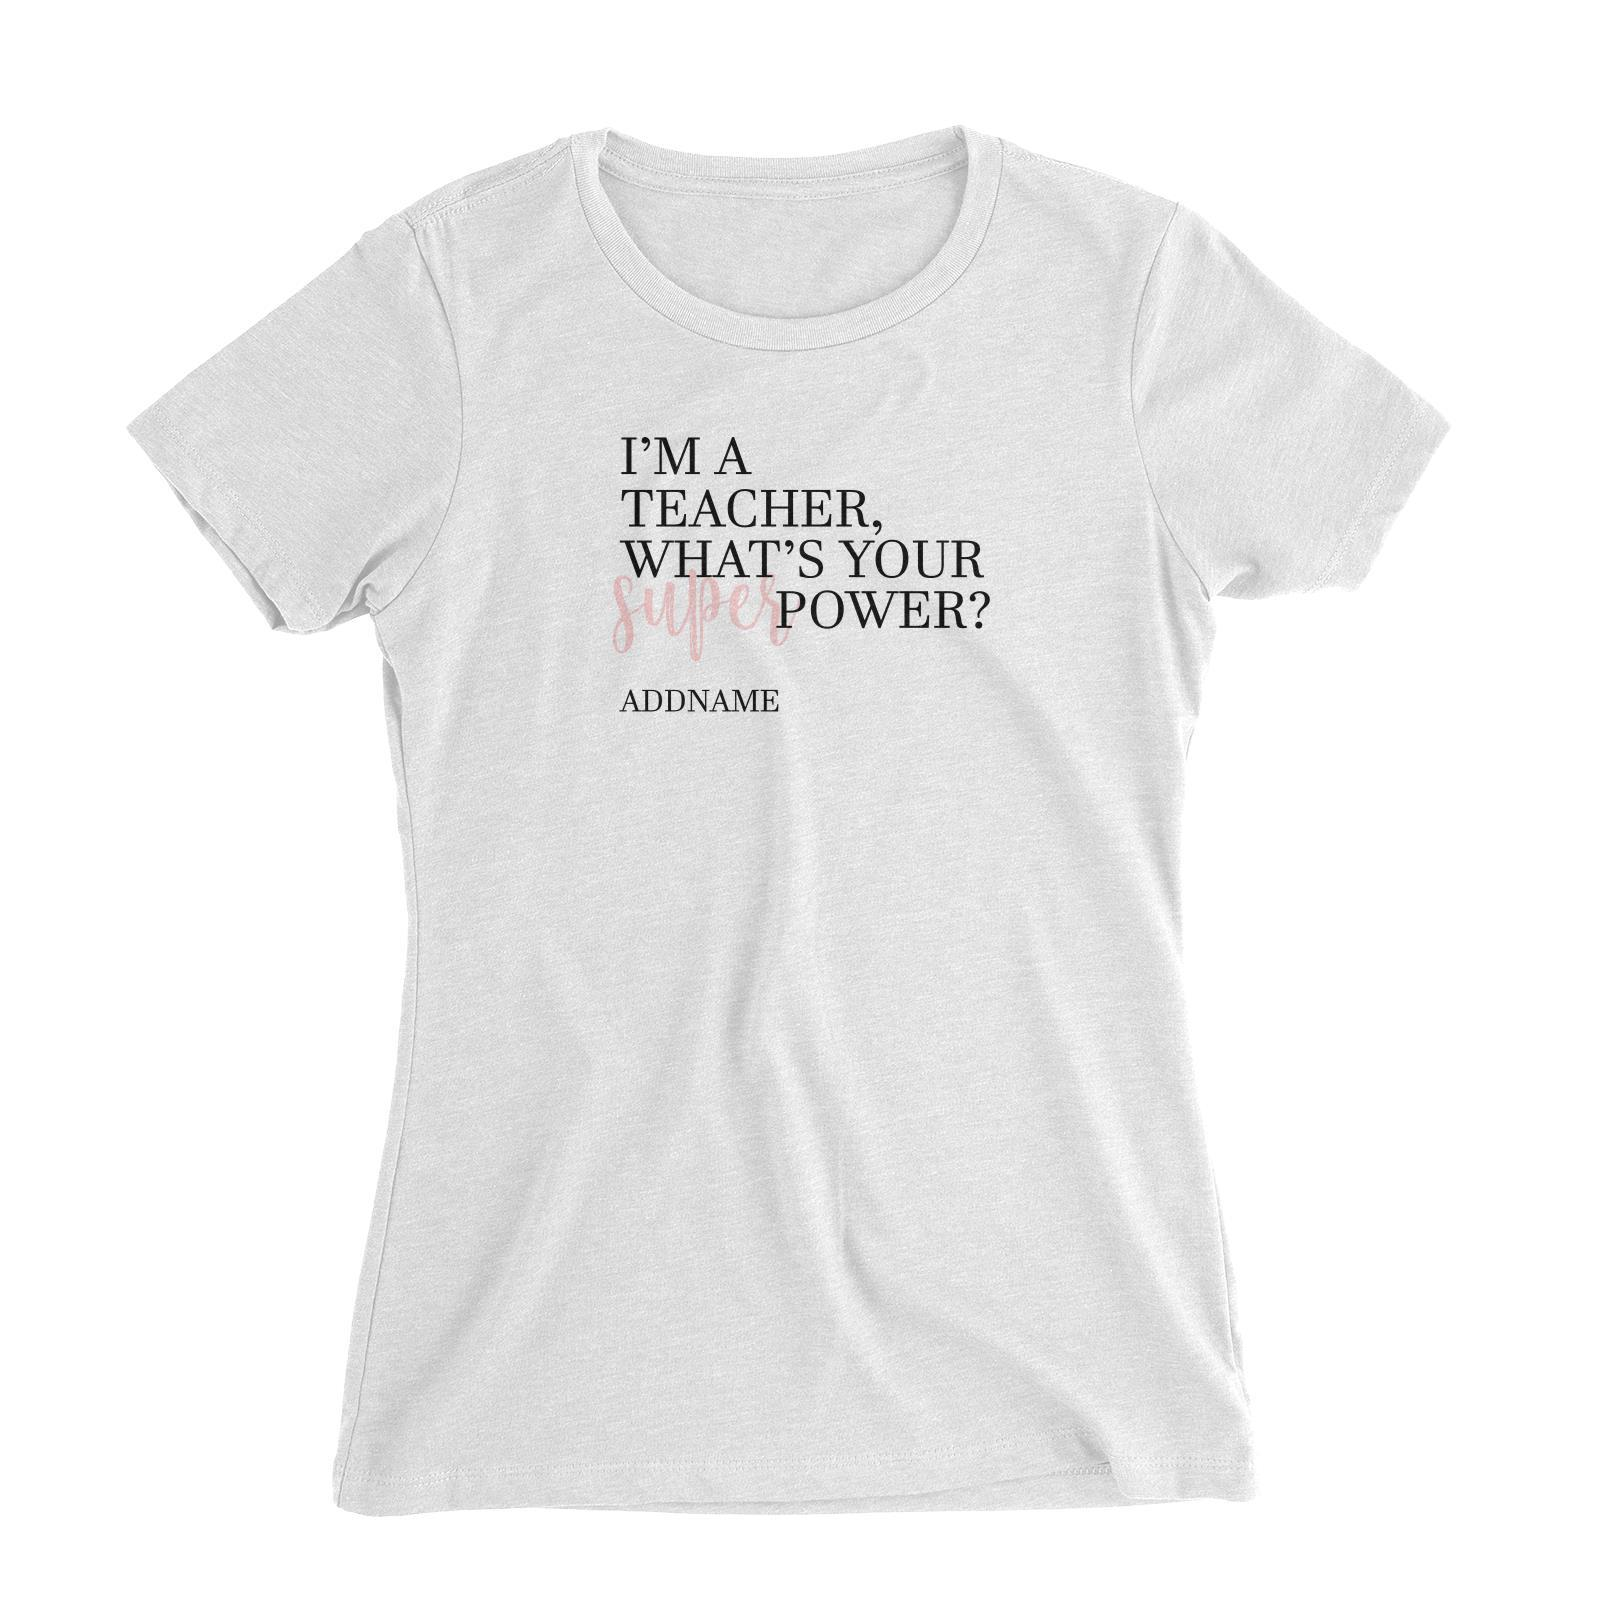 Super Teachers Pink I'm A teacher What's Your Superpower Addname Women's Slim Fit T-Shirt